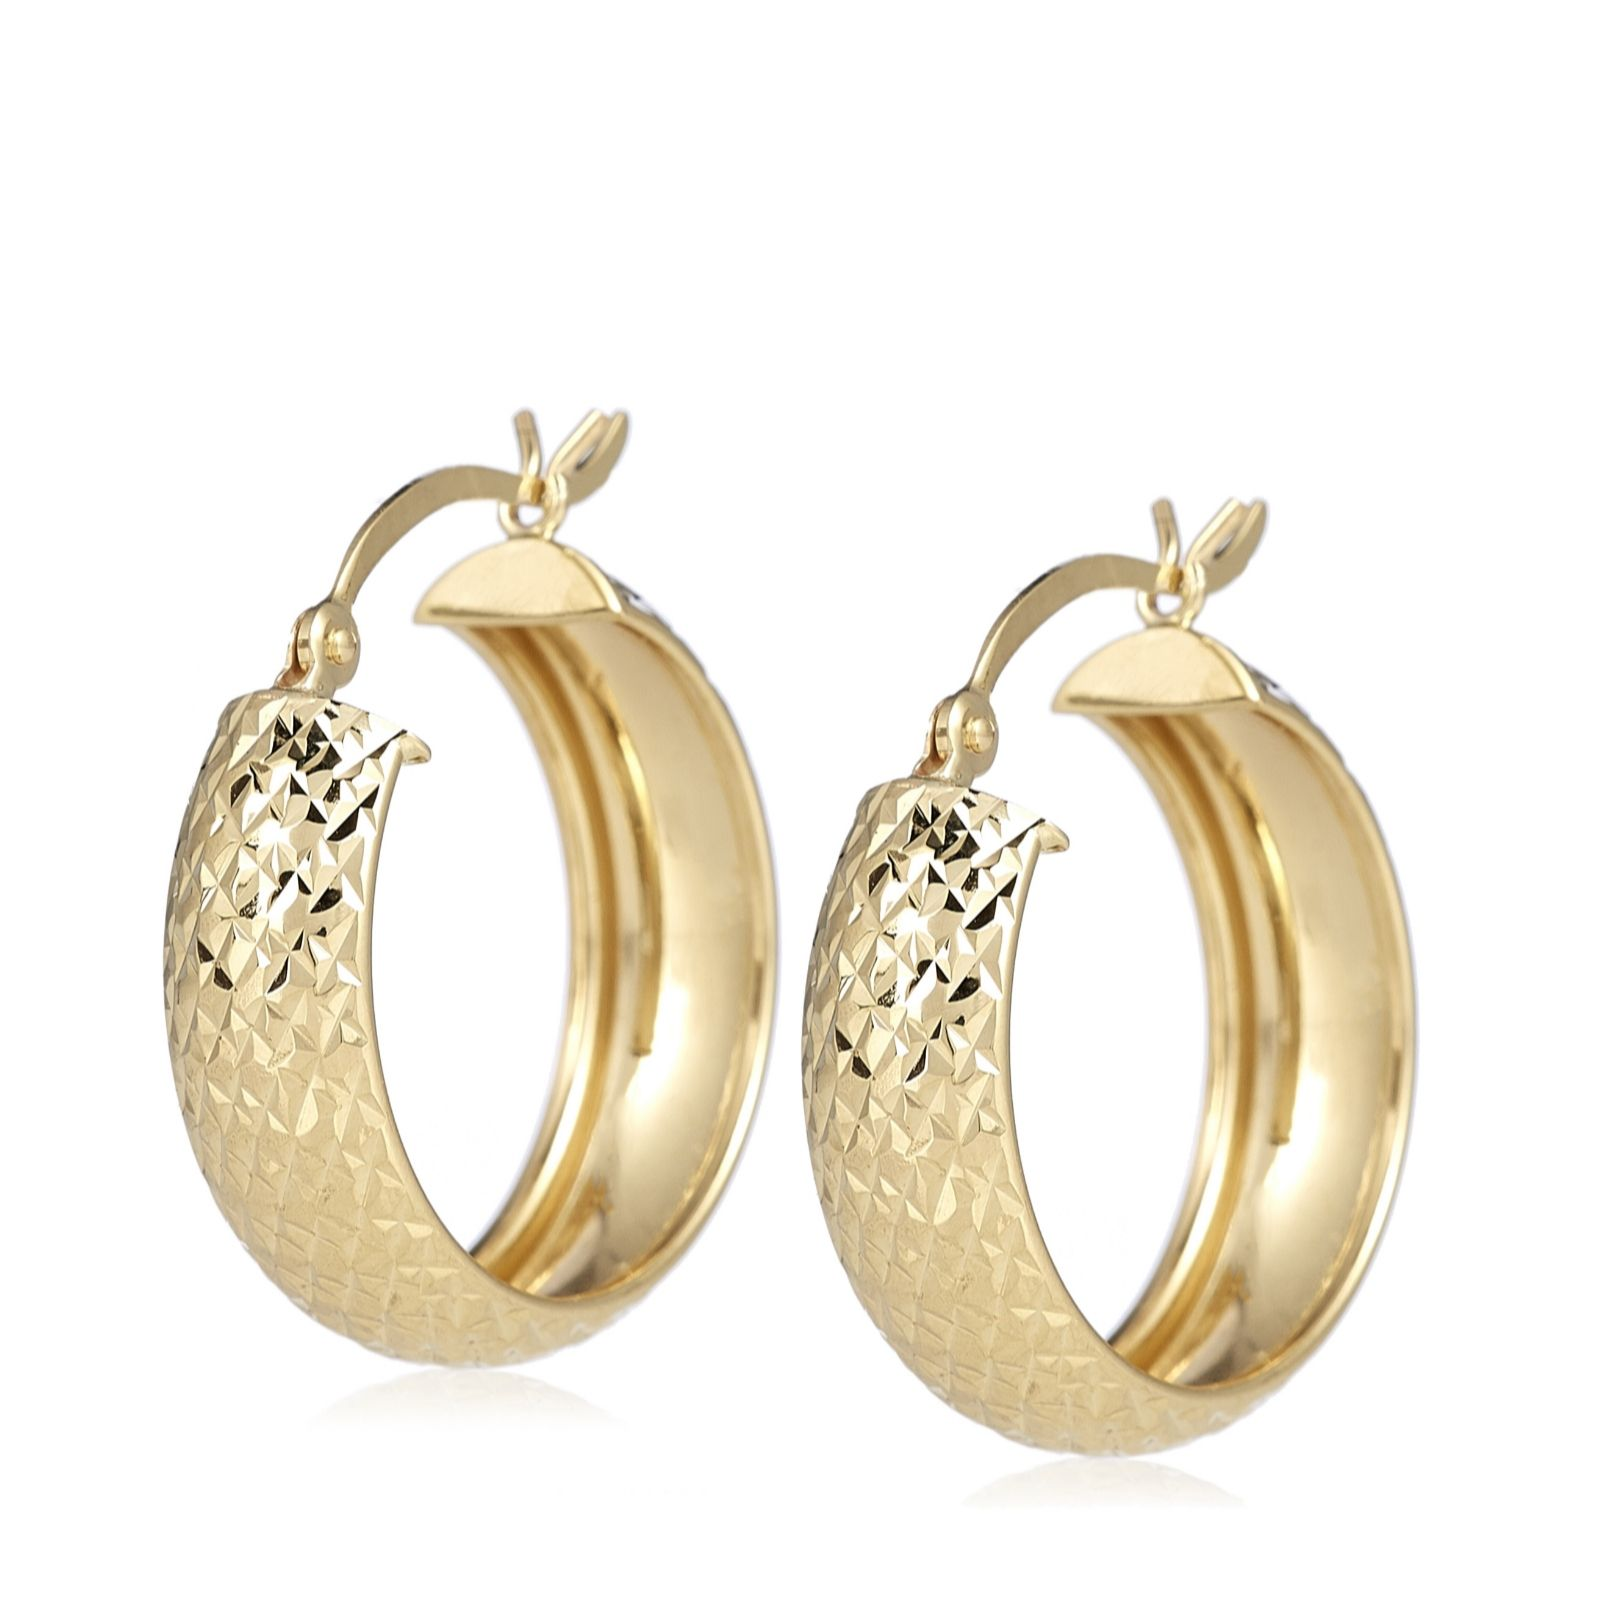 latest phalak earrings designs find orra for gold jewellery a women stiletto earring